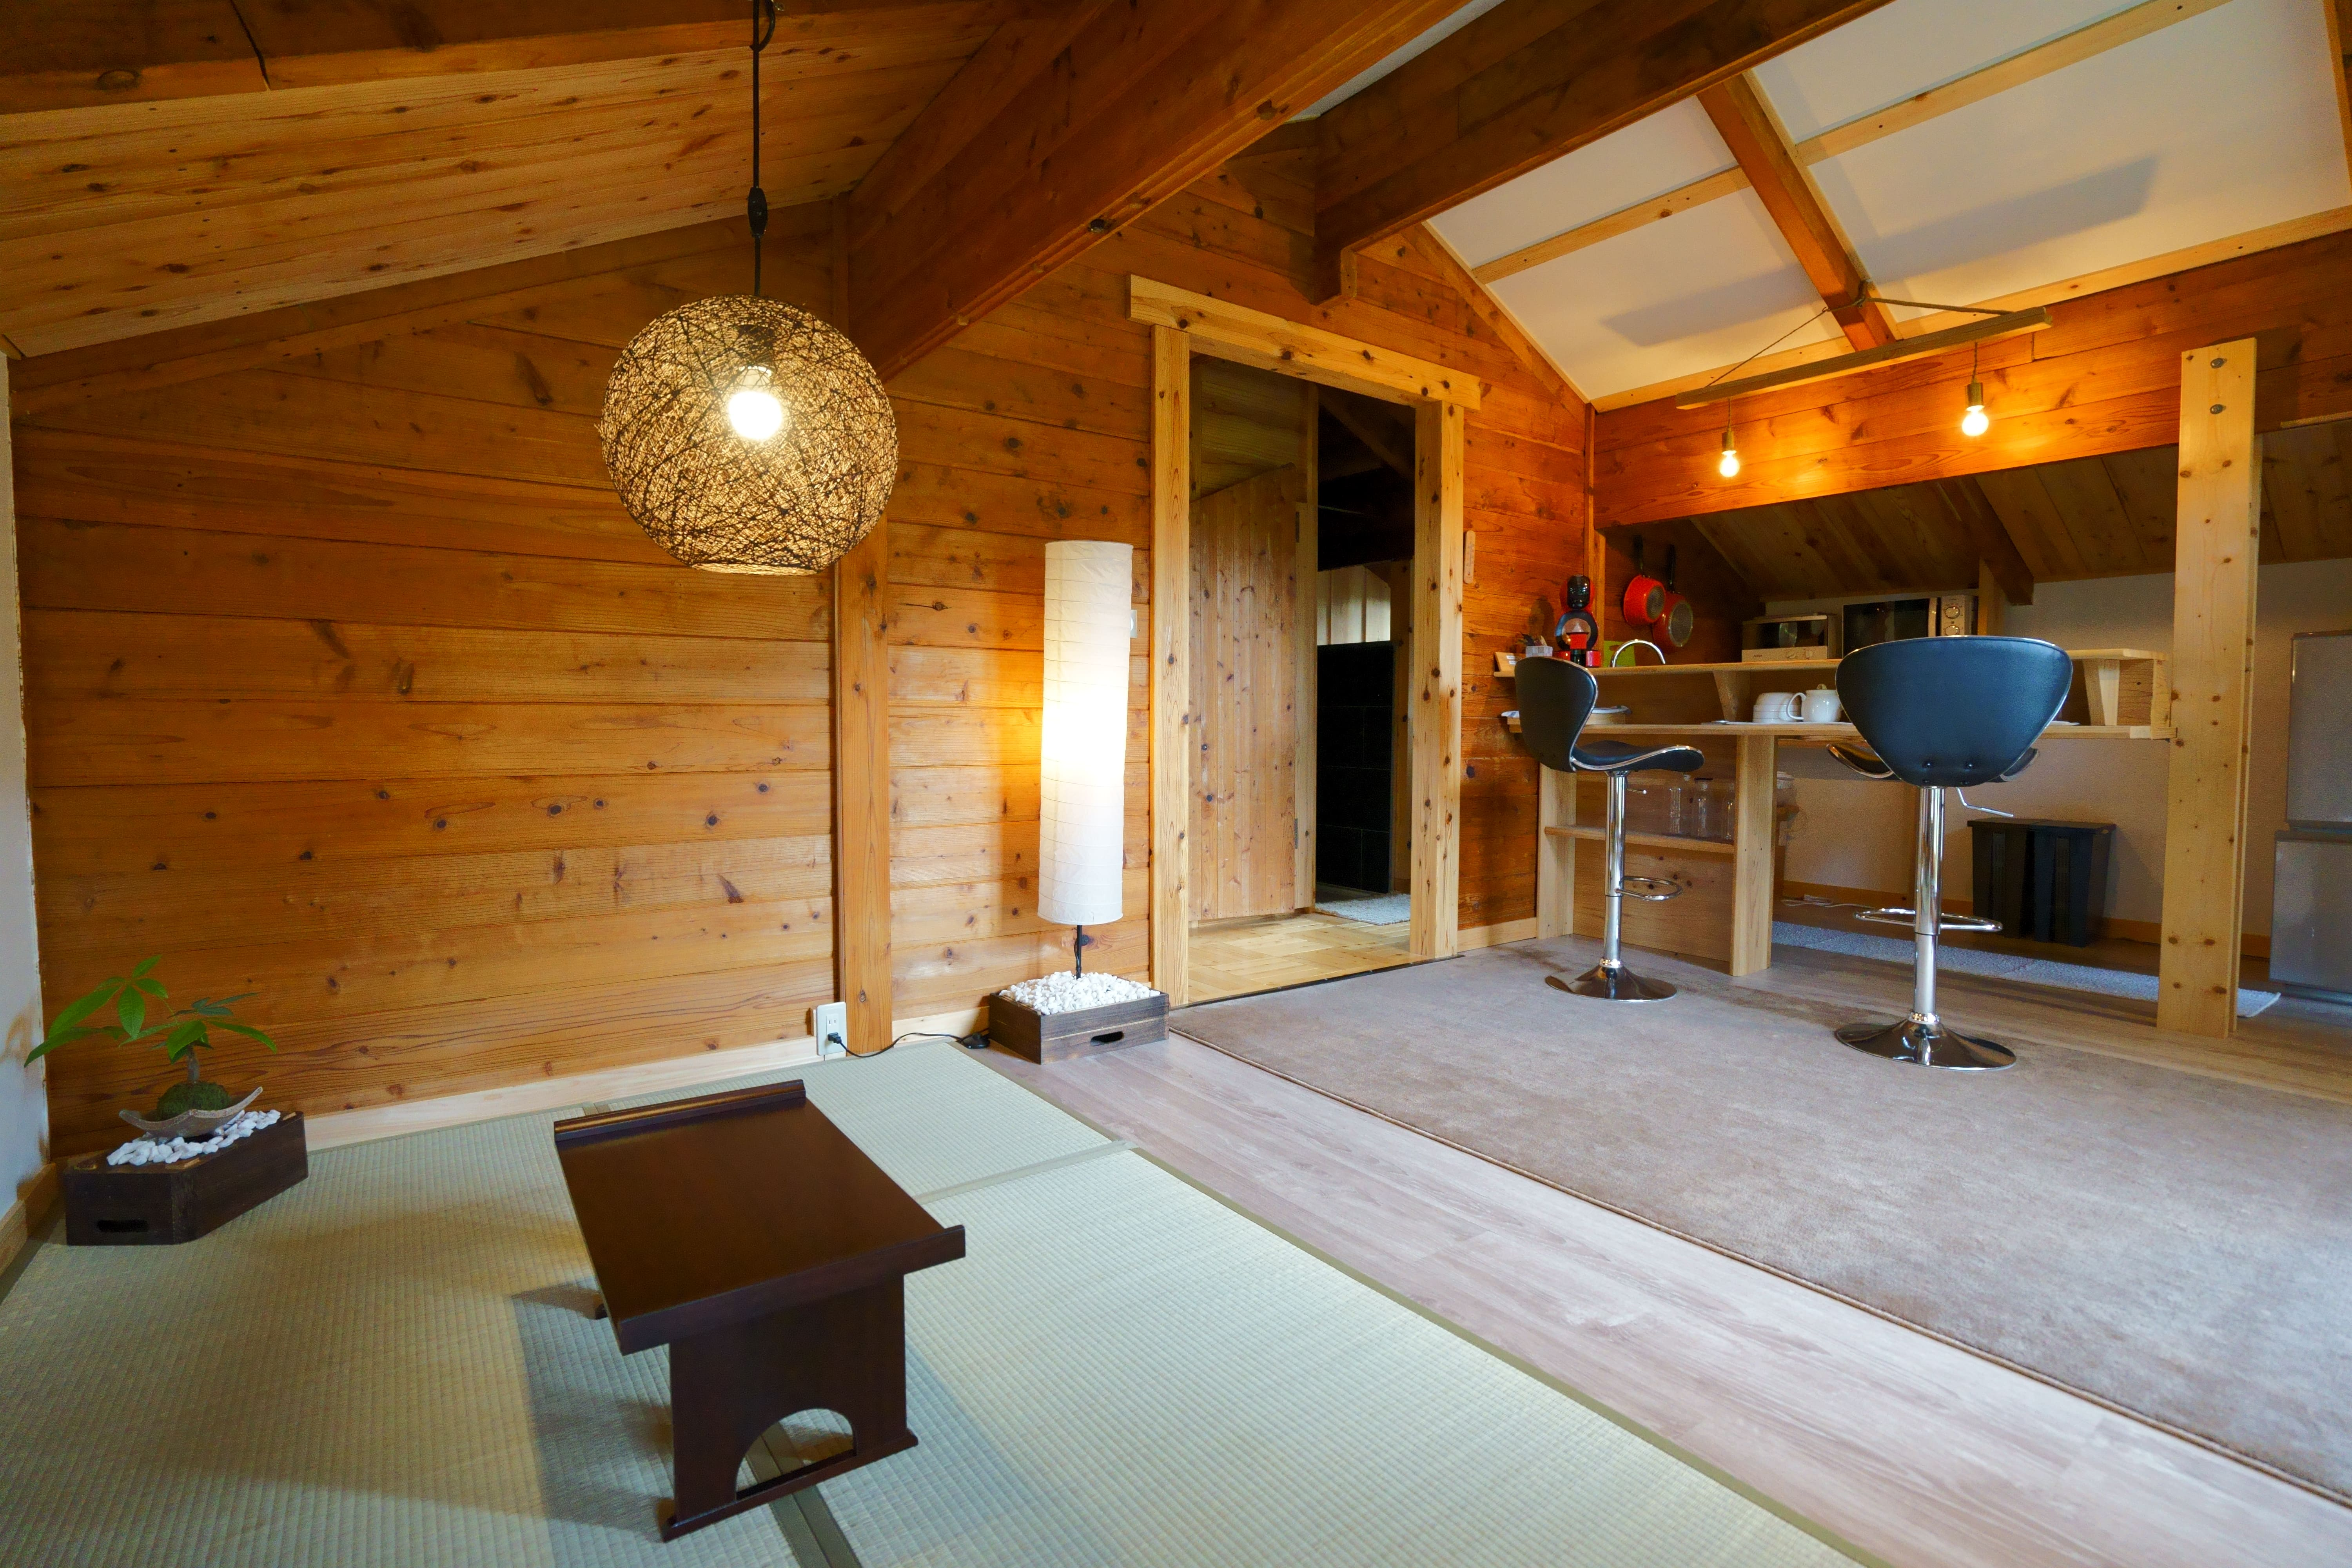 roof_kitchen_and_tatami